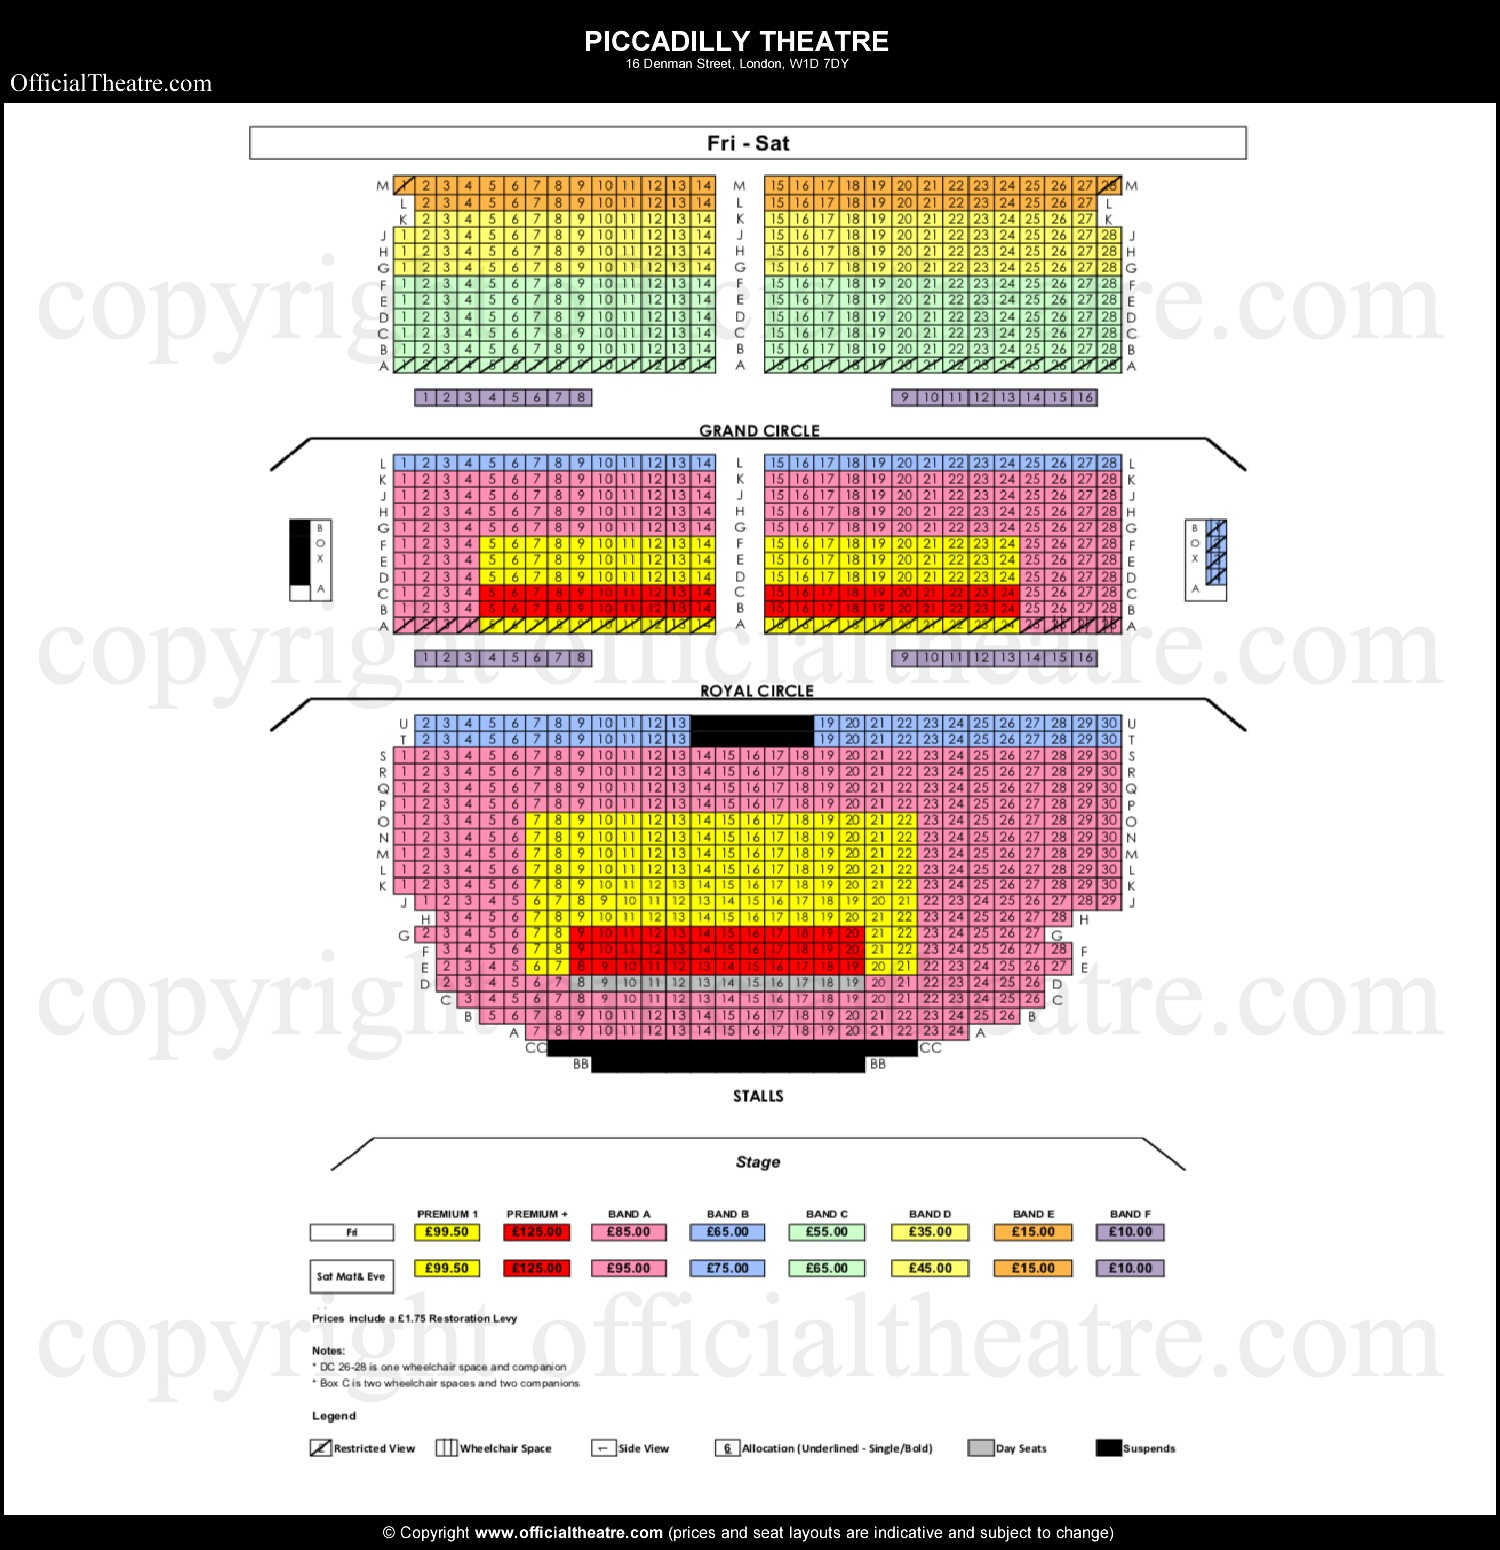 Piccadilly-Theatre-seat-prices-pretty-woman-1